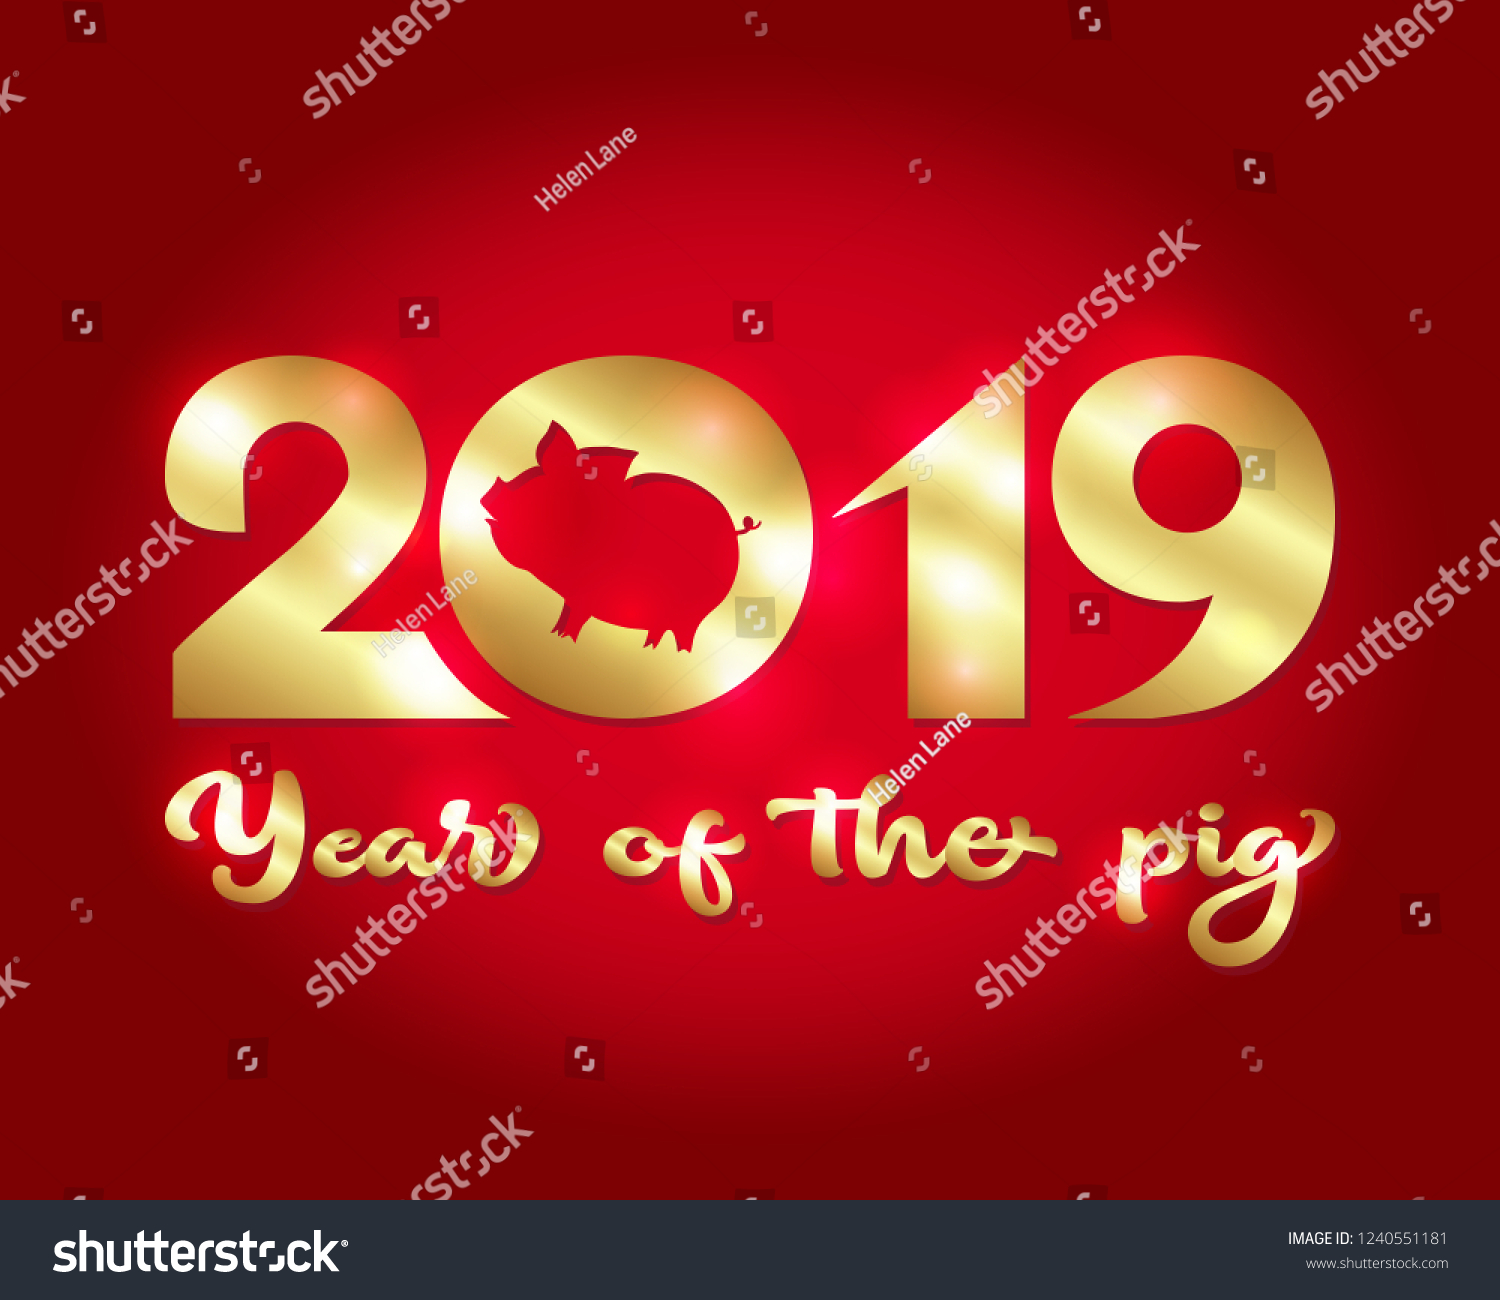 2019 Chinese New Year Of The Pig Template For Greeting Card Invitation